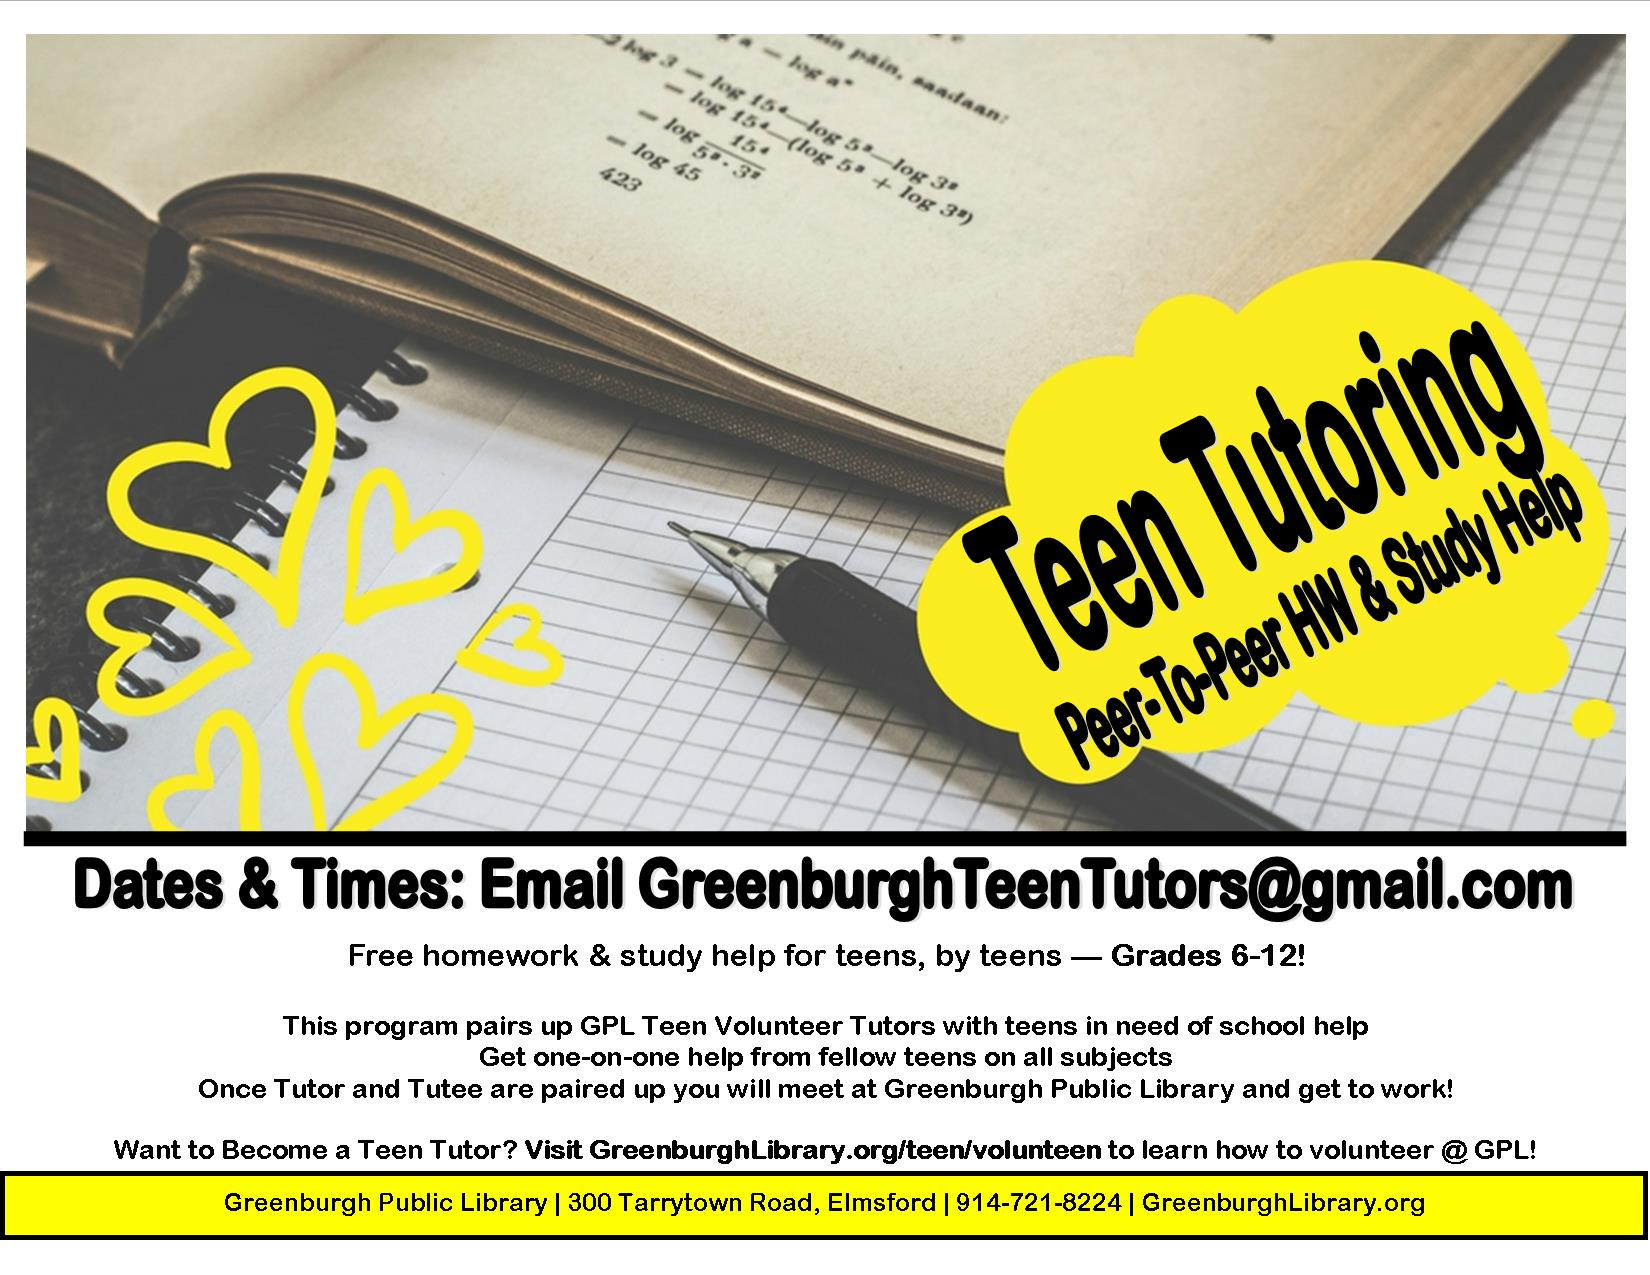 Teen Tutoring: Peer-To-Peer Homework & Study Help